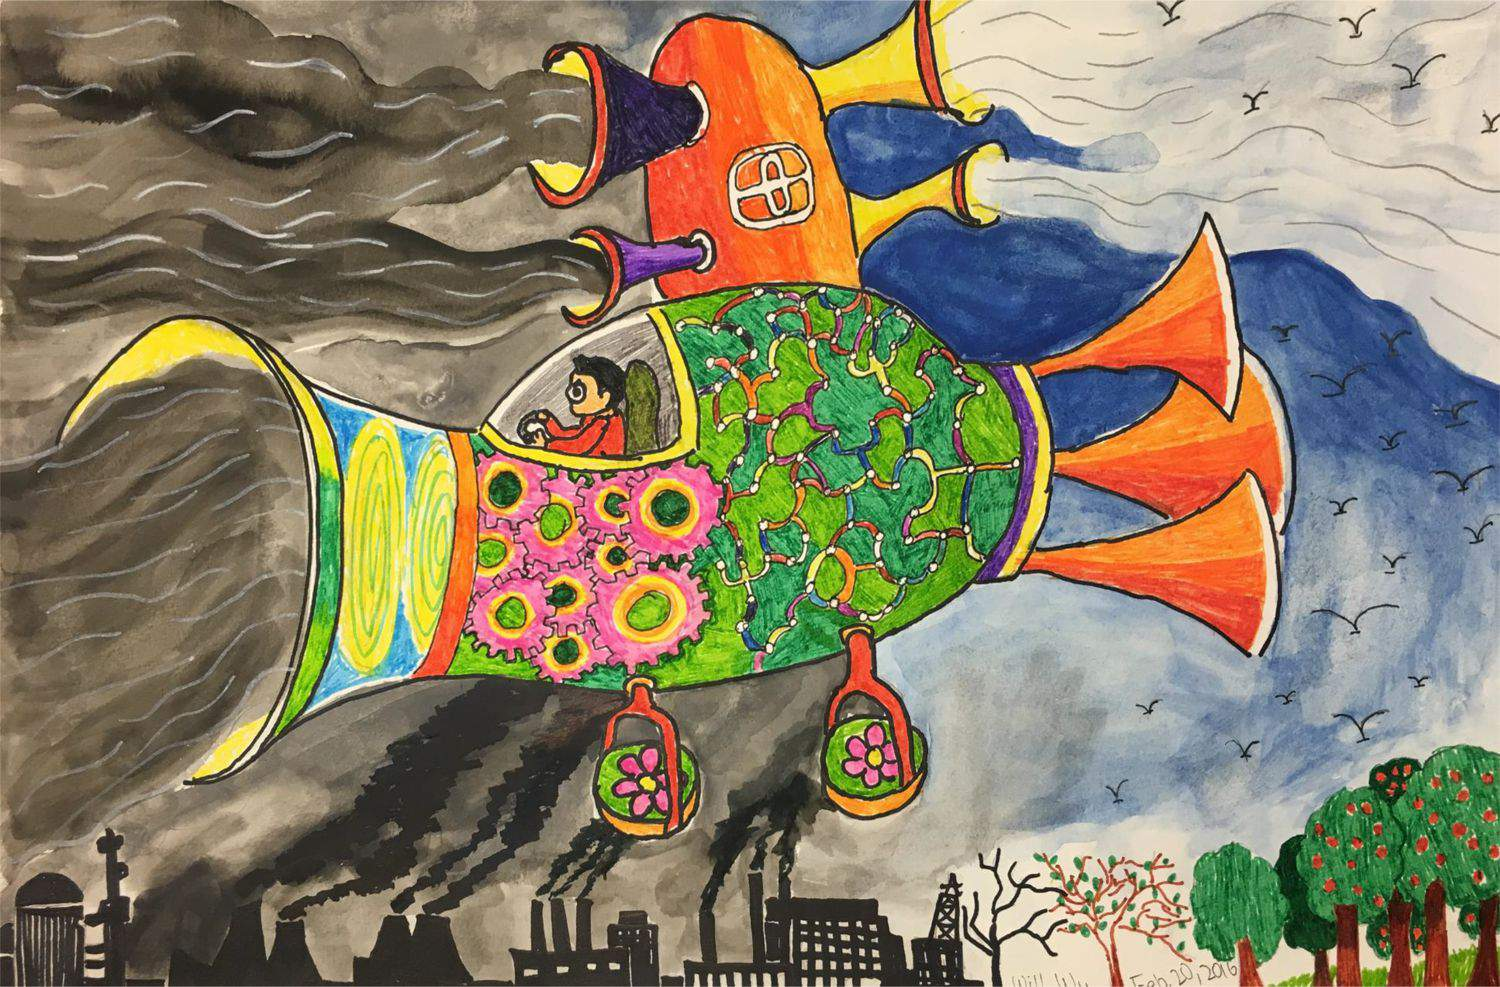 Clean Air for Everyone! by Will(age9)